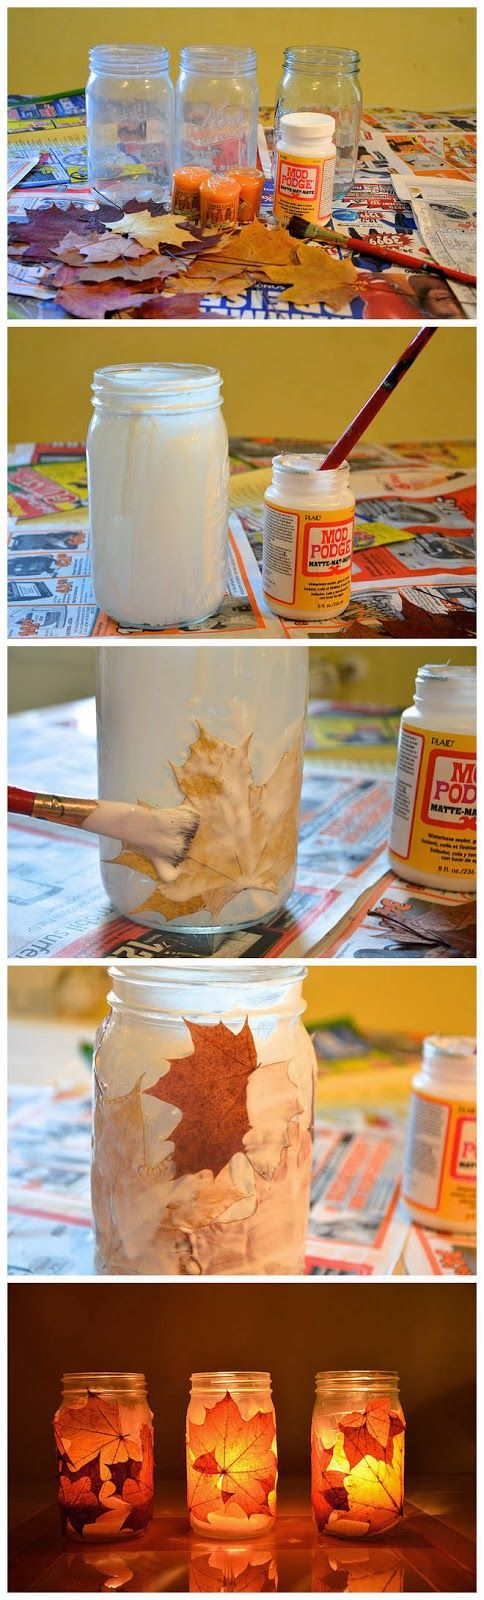 Grab some leaves from the yard and some of the jars you have lying around and make Autumn night lights*****Follow our unique garden themed boards at www.pinterest.com/earthwormtec *****Follow us on www.facebook.com/earthwormtec for great organic gardening tips #DIY #Fall #decorations